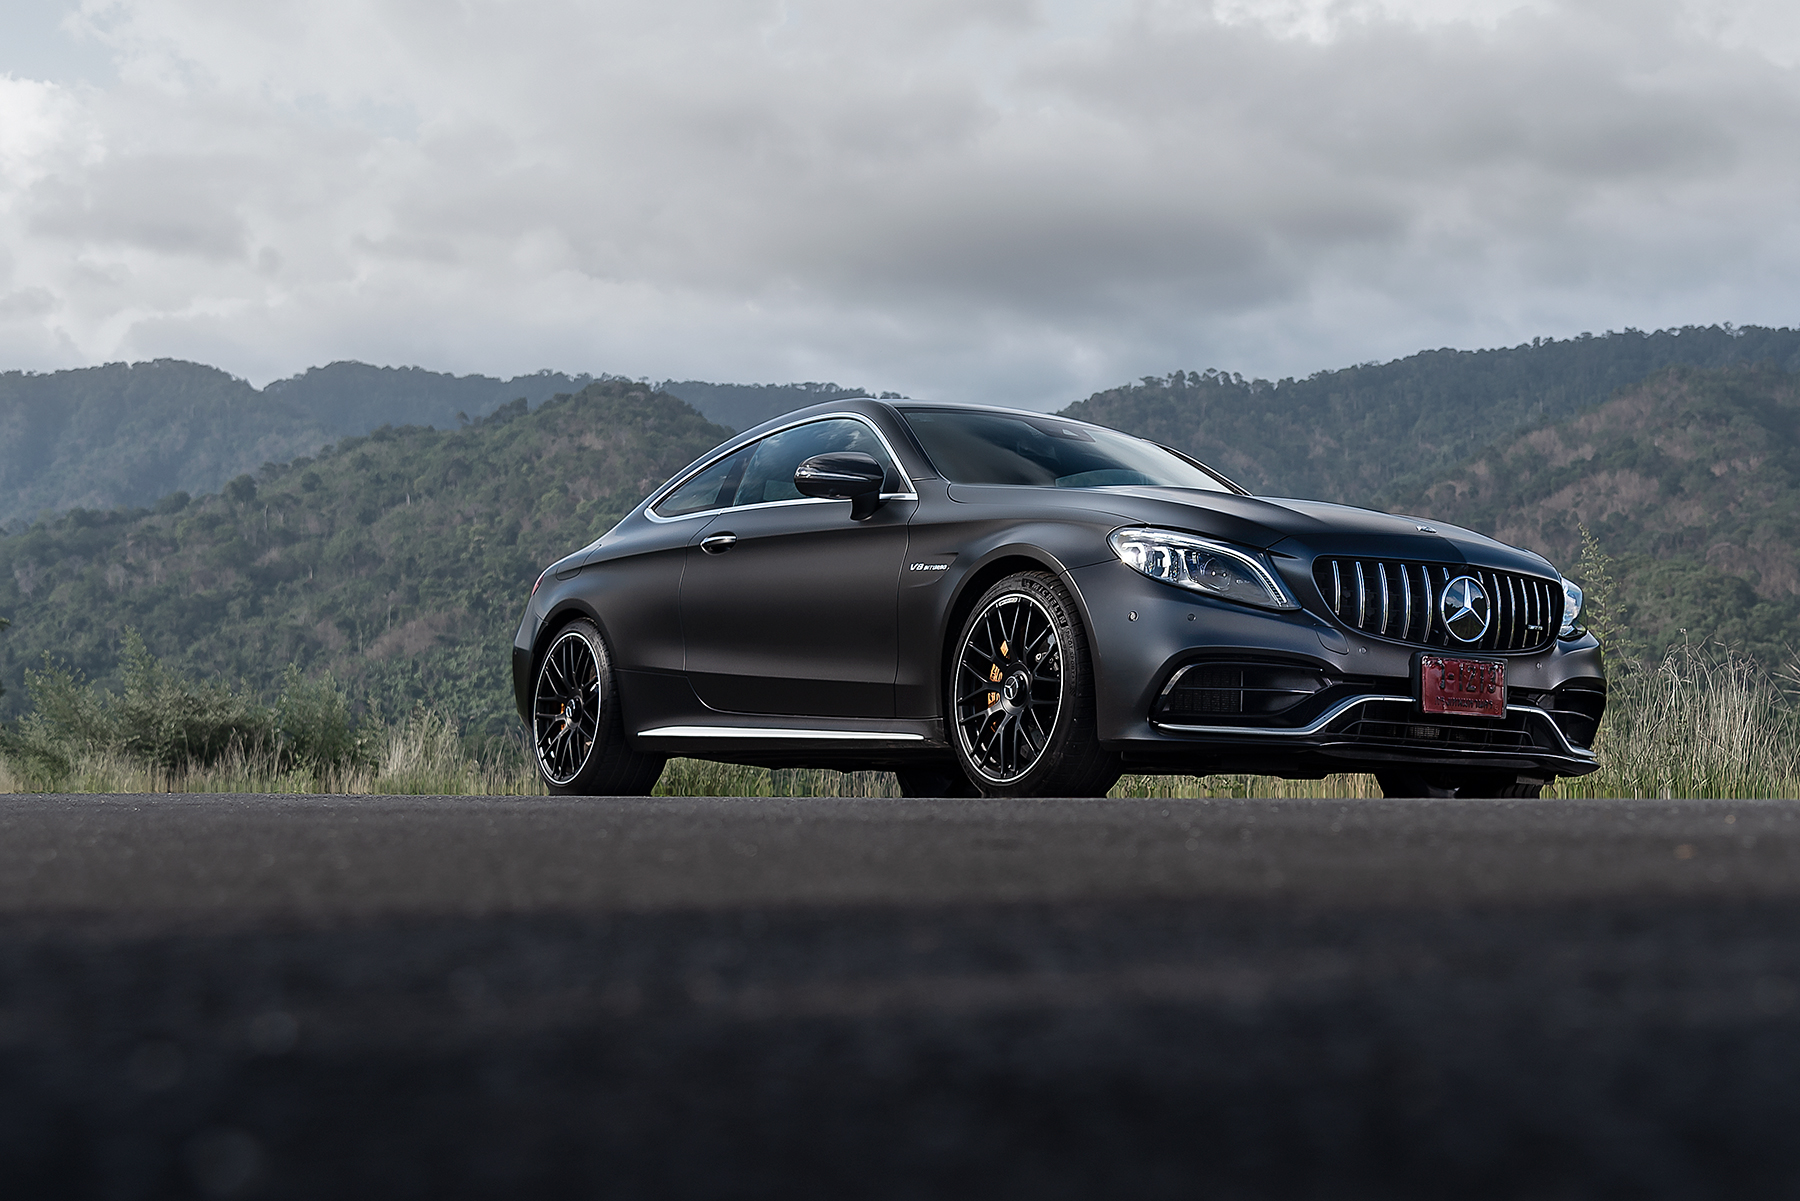 Mercedes-AMG C 63 S Coupe'